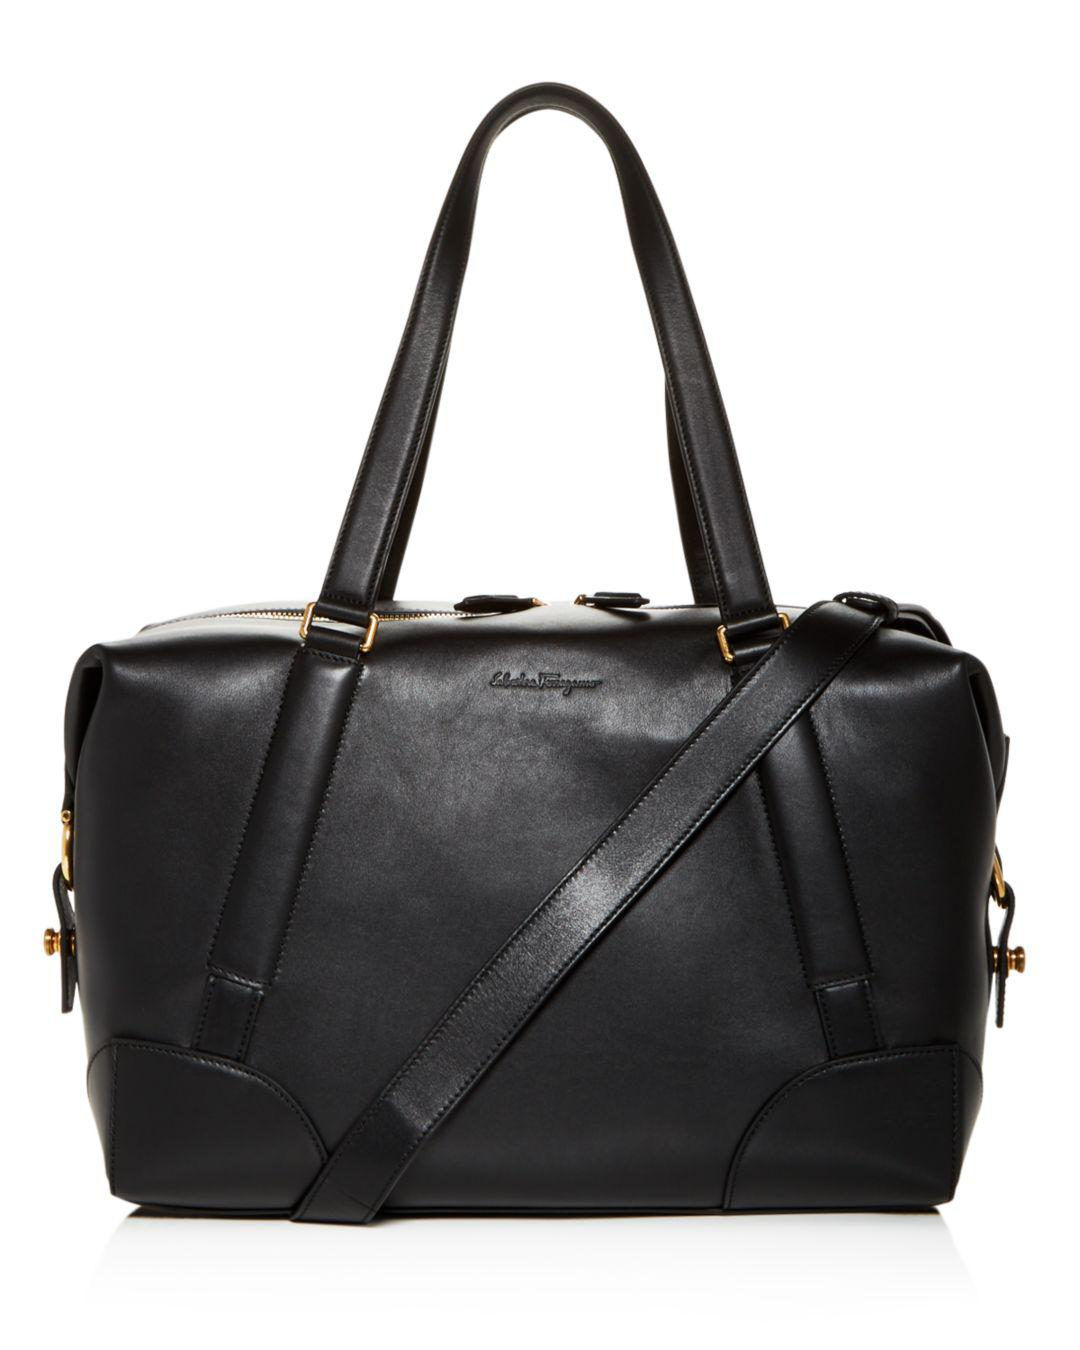 b79b277e3bf7 Lyst - Ferragamo Runway Leather Duffel Bag in Black for Men